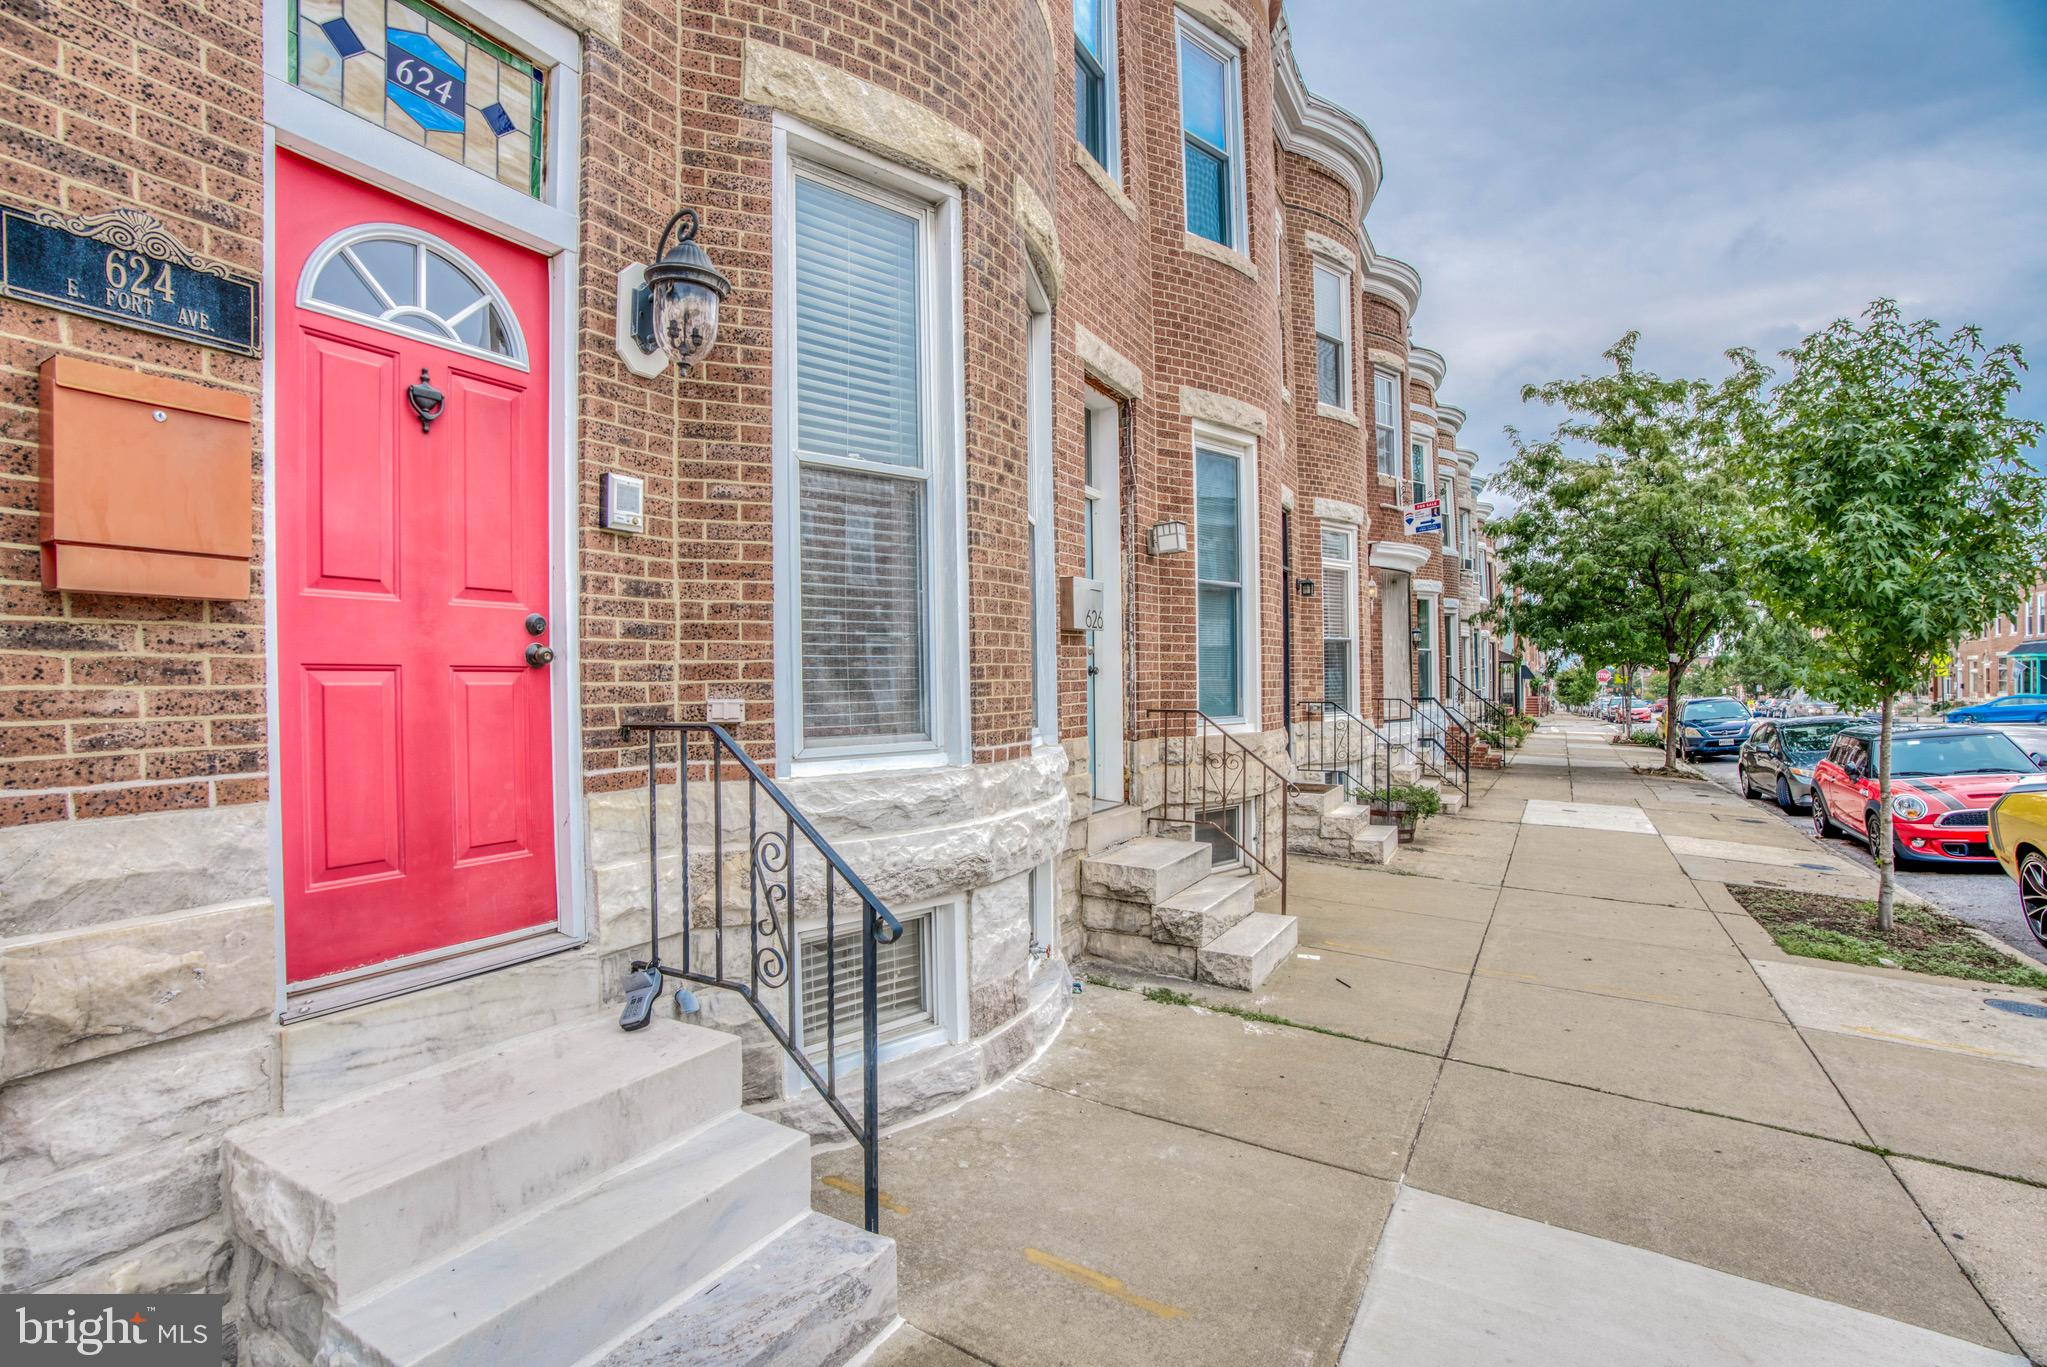 624 E Fort Ave, Baltimore, MD, 21230